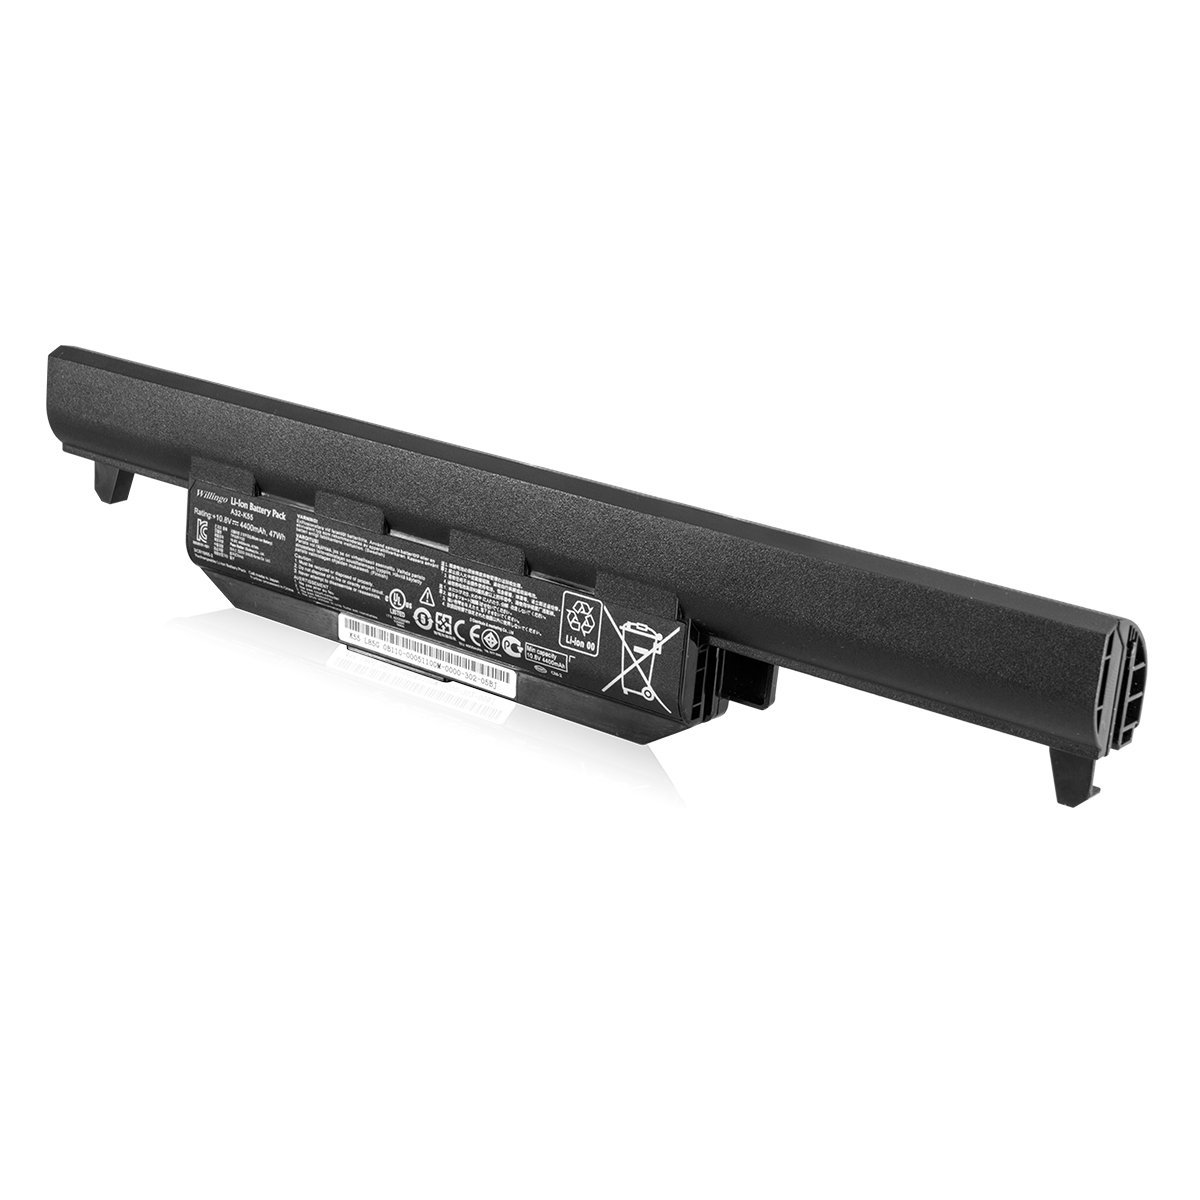 Willingo Replacement Laptop Battery for Asus U57A X55 X55C X55U X75 K55A K55N R500V, Fits P/N A32-K55 A33-K55 A41-K55 [6-Cell 4400mAh/48Wh]